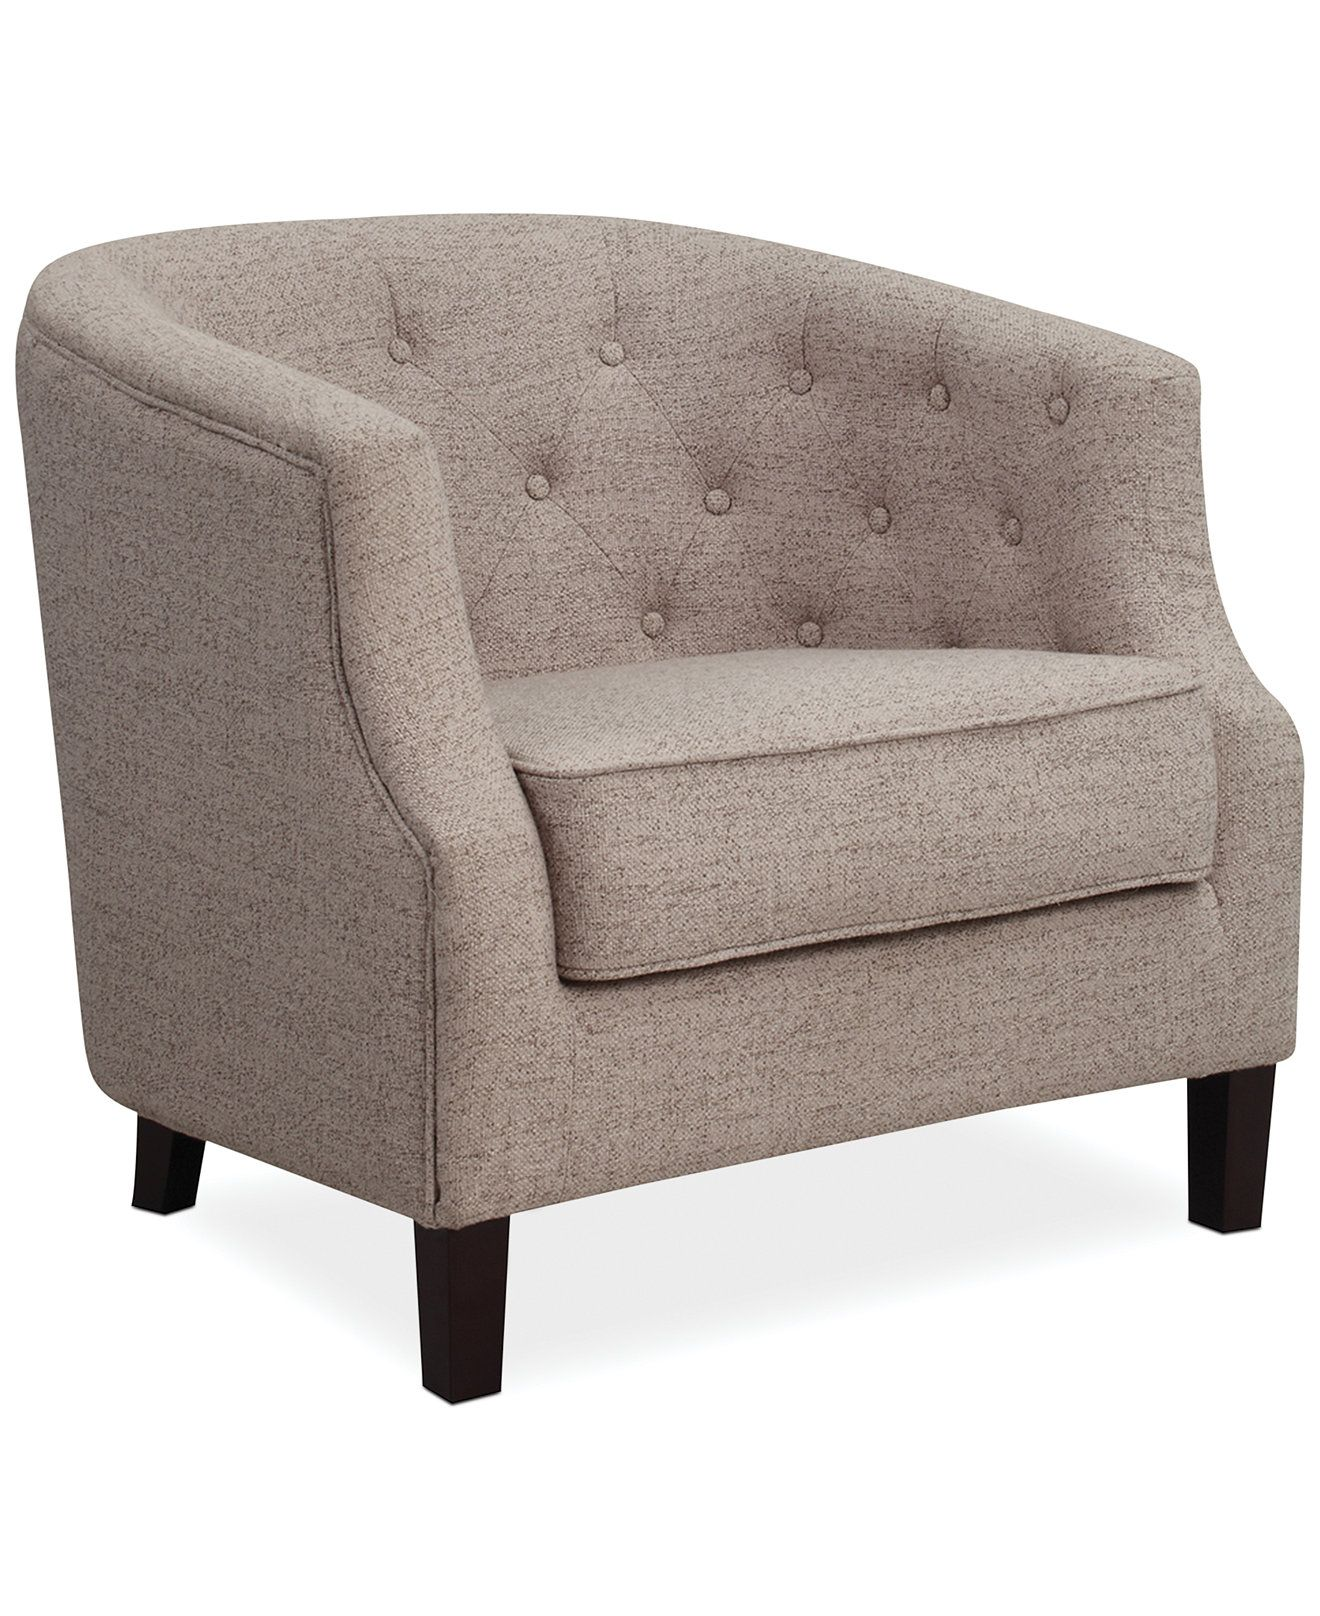 Penelope Fabric Accent Chair With Images Fabric Accent Chair